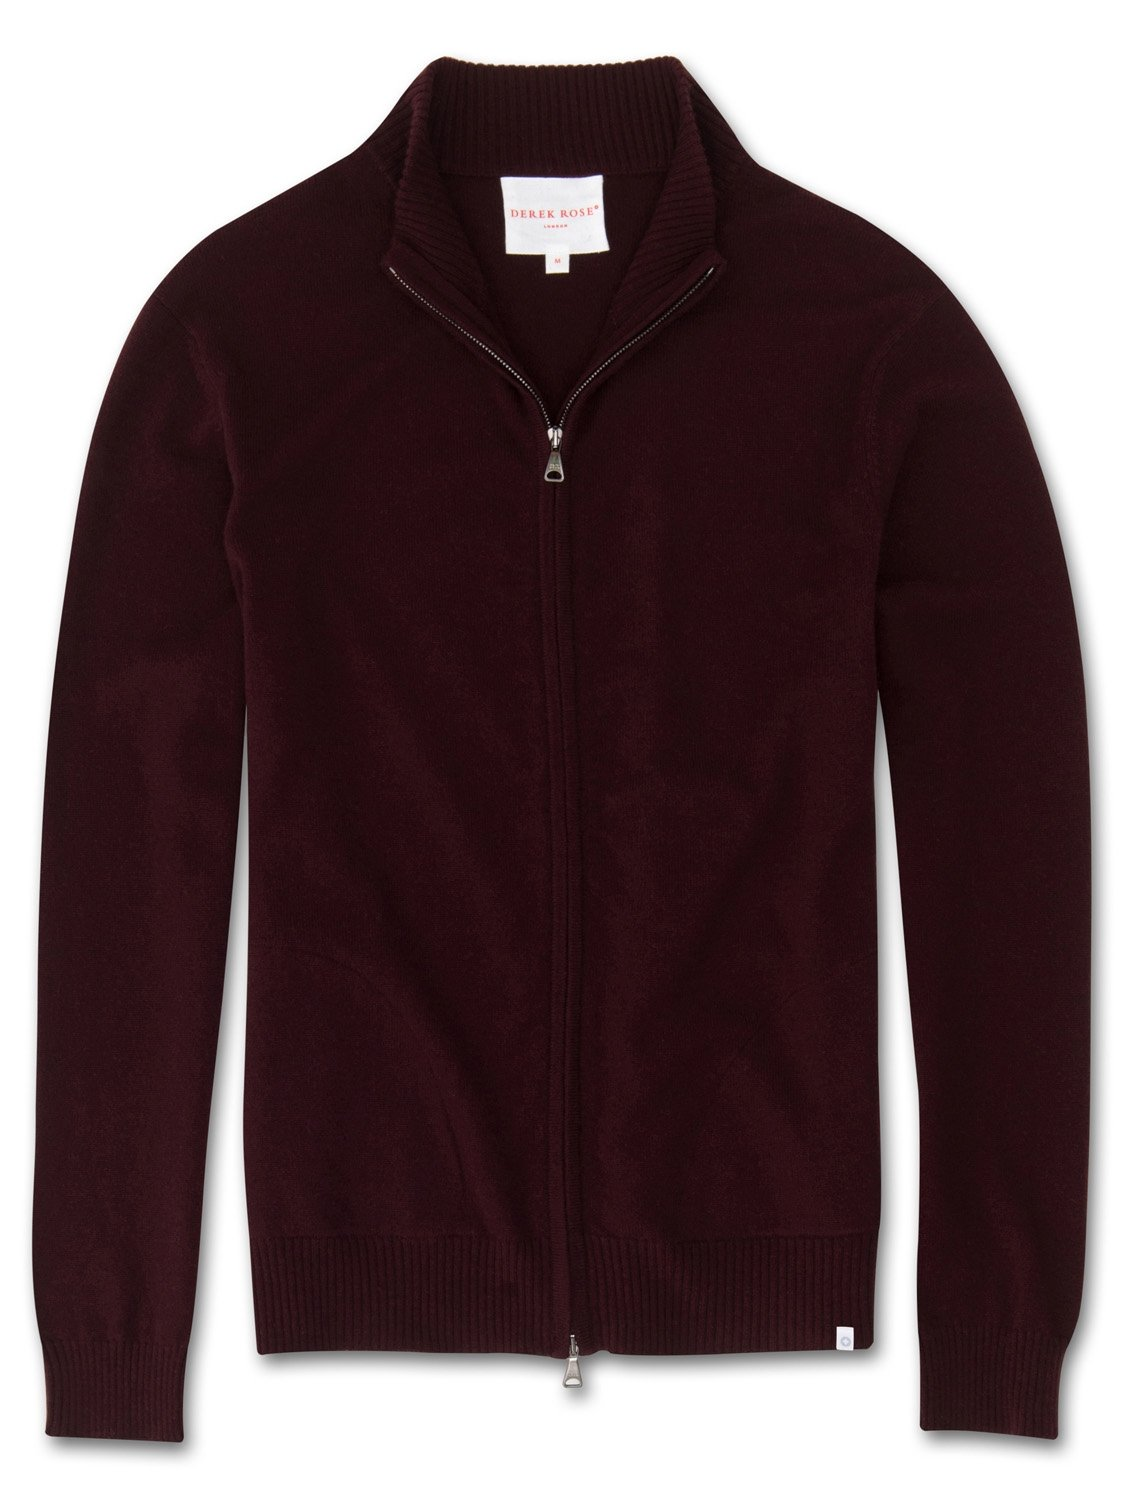 Men's Cashmere Zip-Up Top Finley Pure Cashmere Burgundy